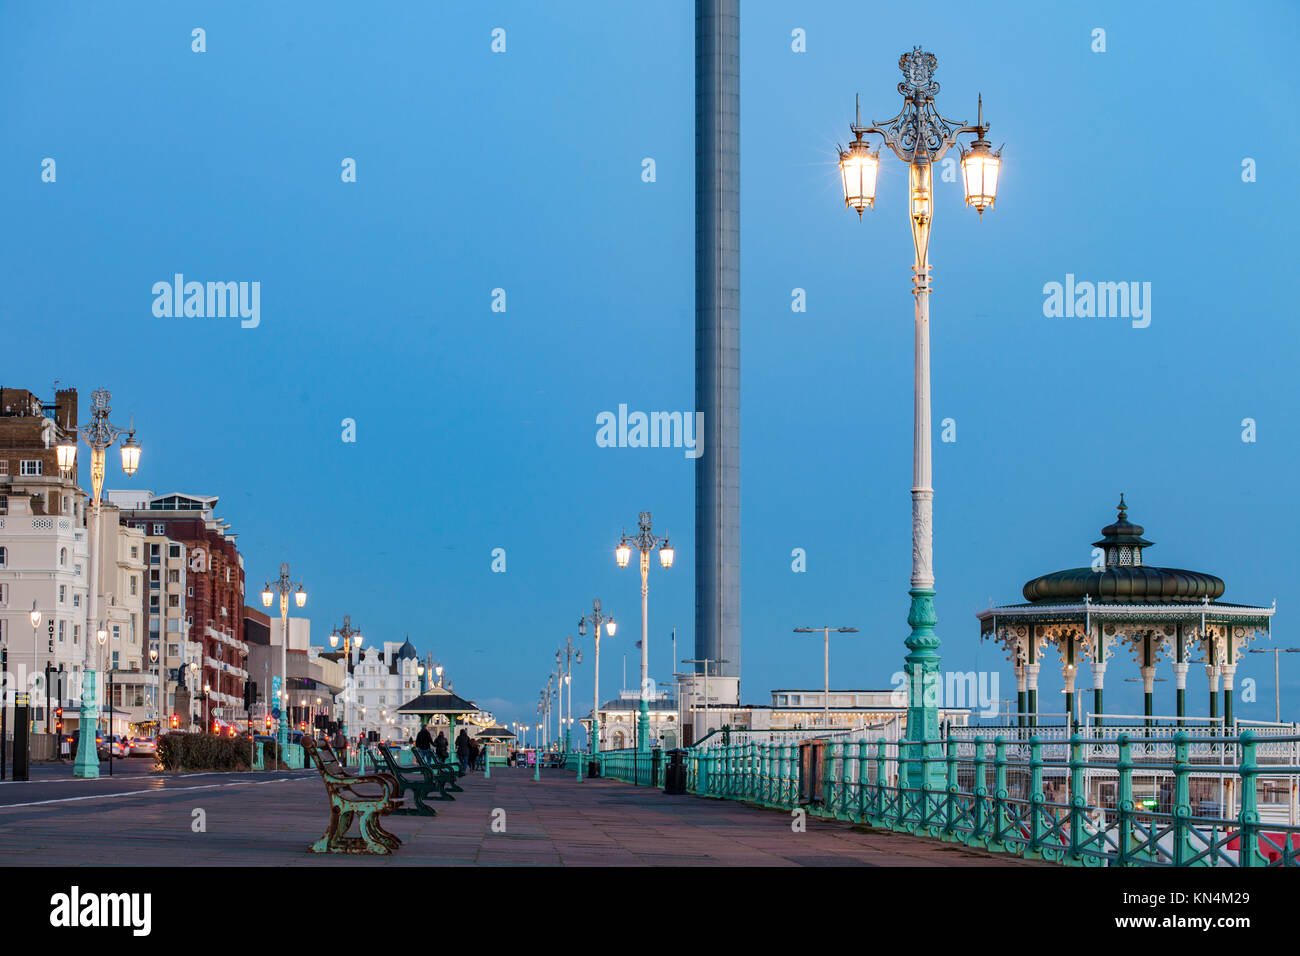 Evening on Brighton seafront, East Sussex, England. - Stock Image